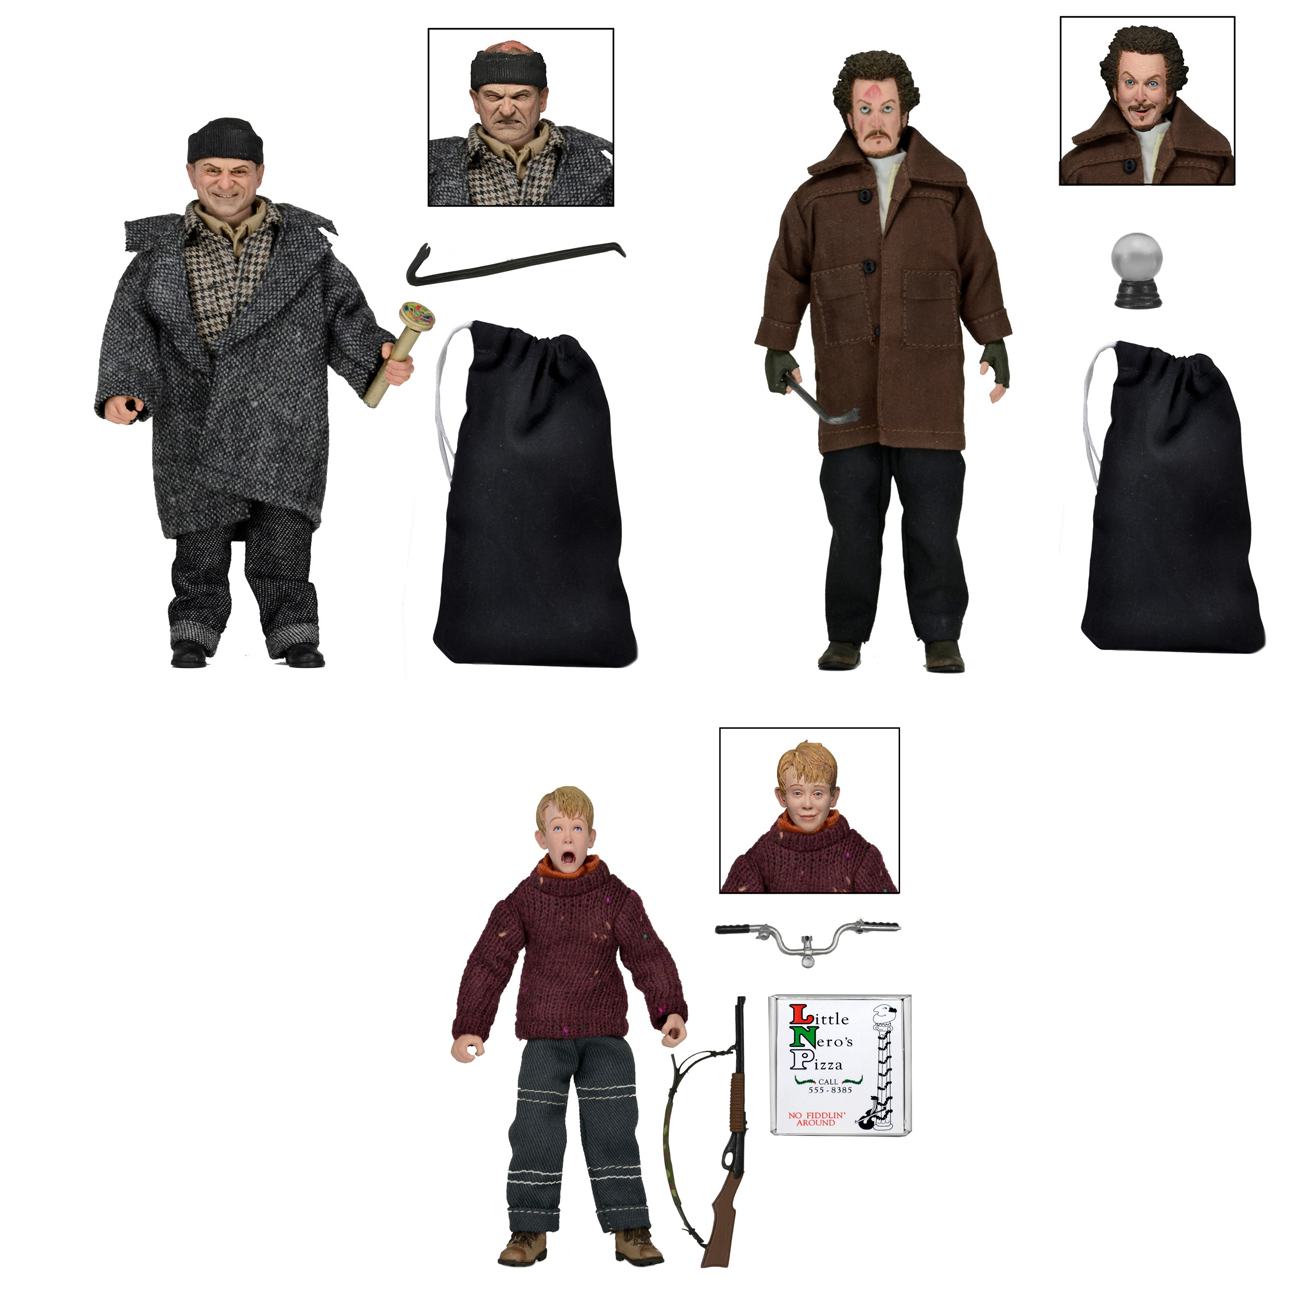 Home Alone 8 E2 80 B3 Clothed Action Figures Kevin And Wet Banditsortment